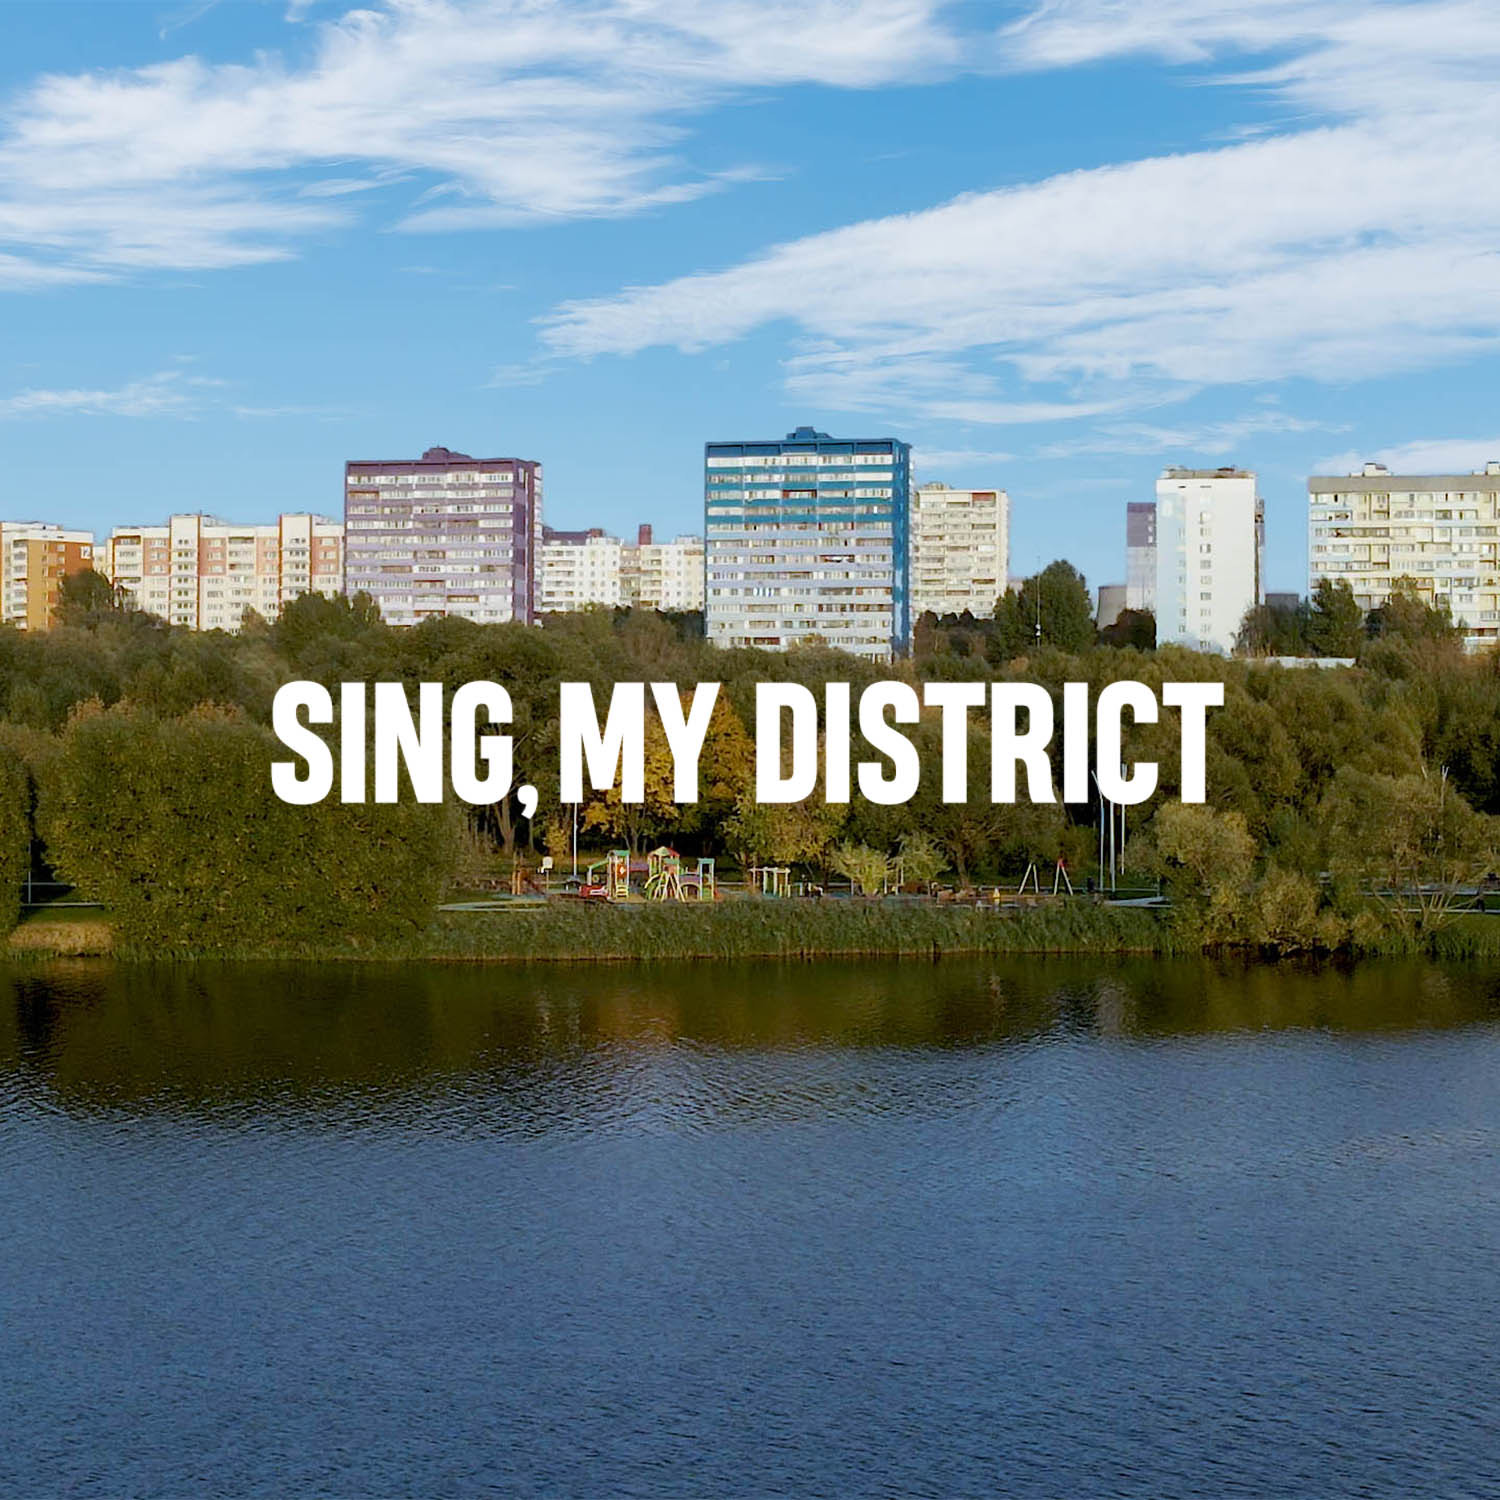 Sing, My District